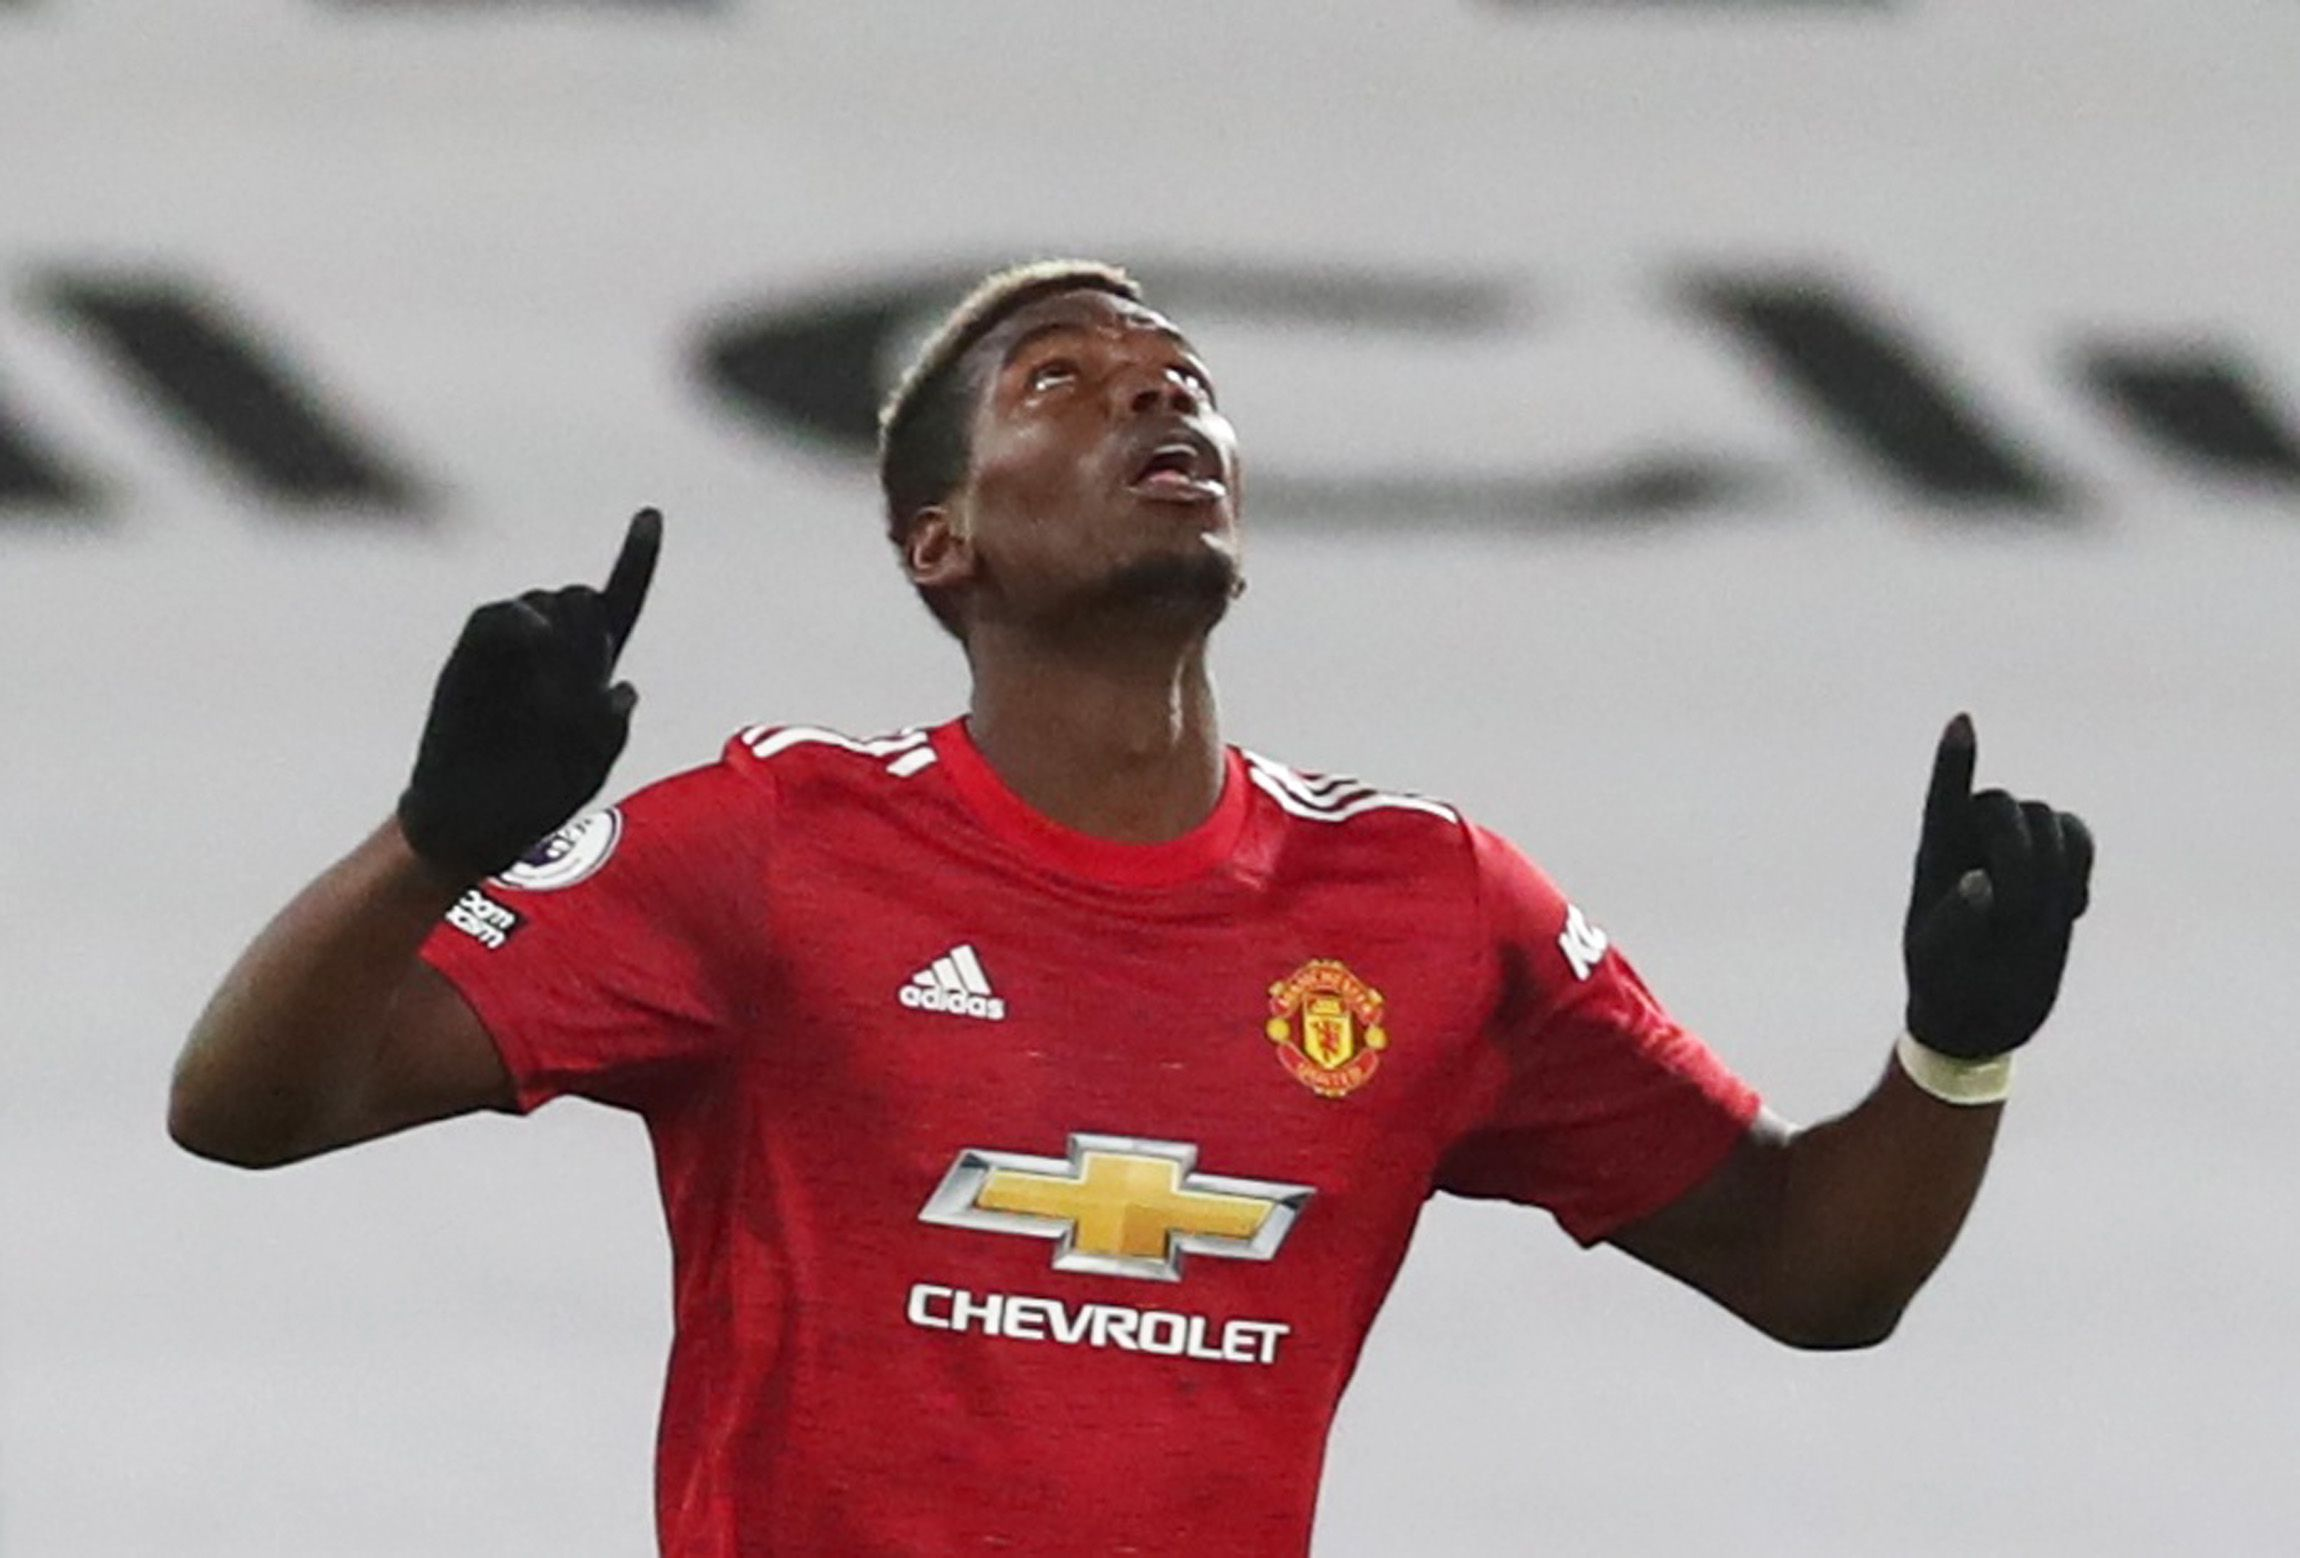 5) Paul Pogba, Manchester United, USD 20,66 millones